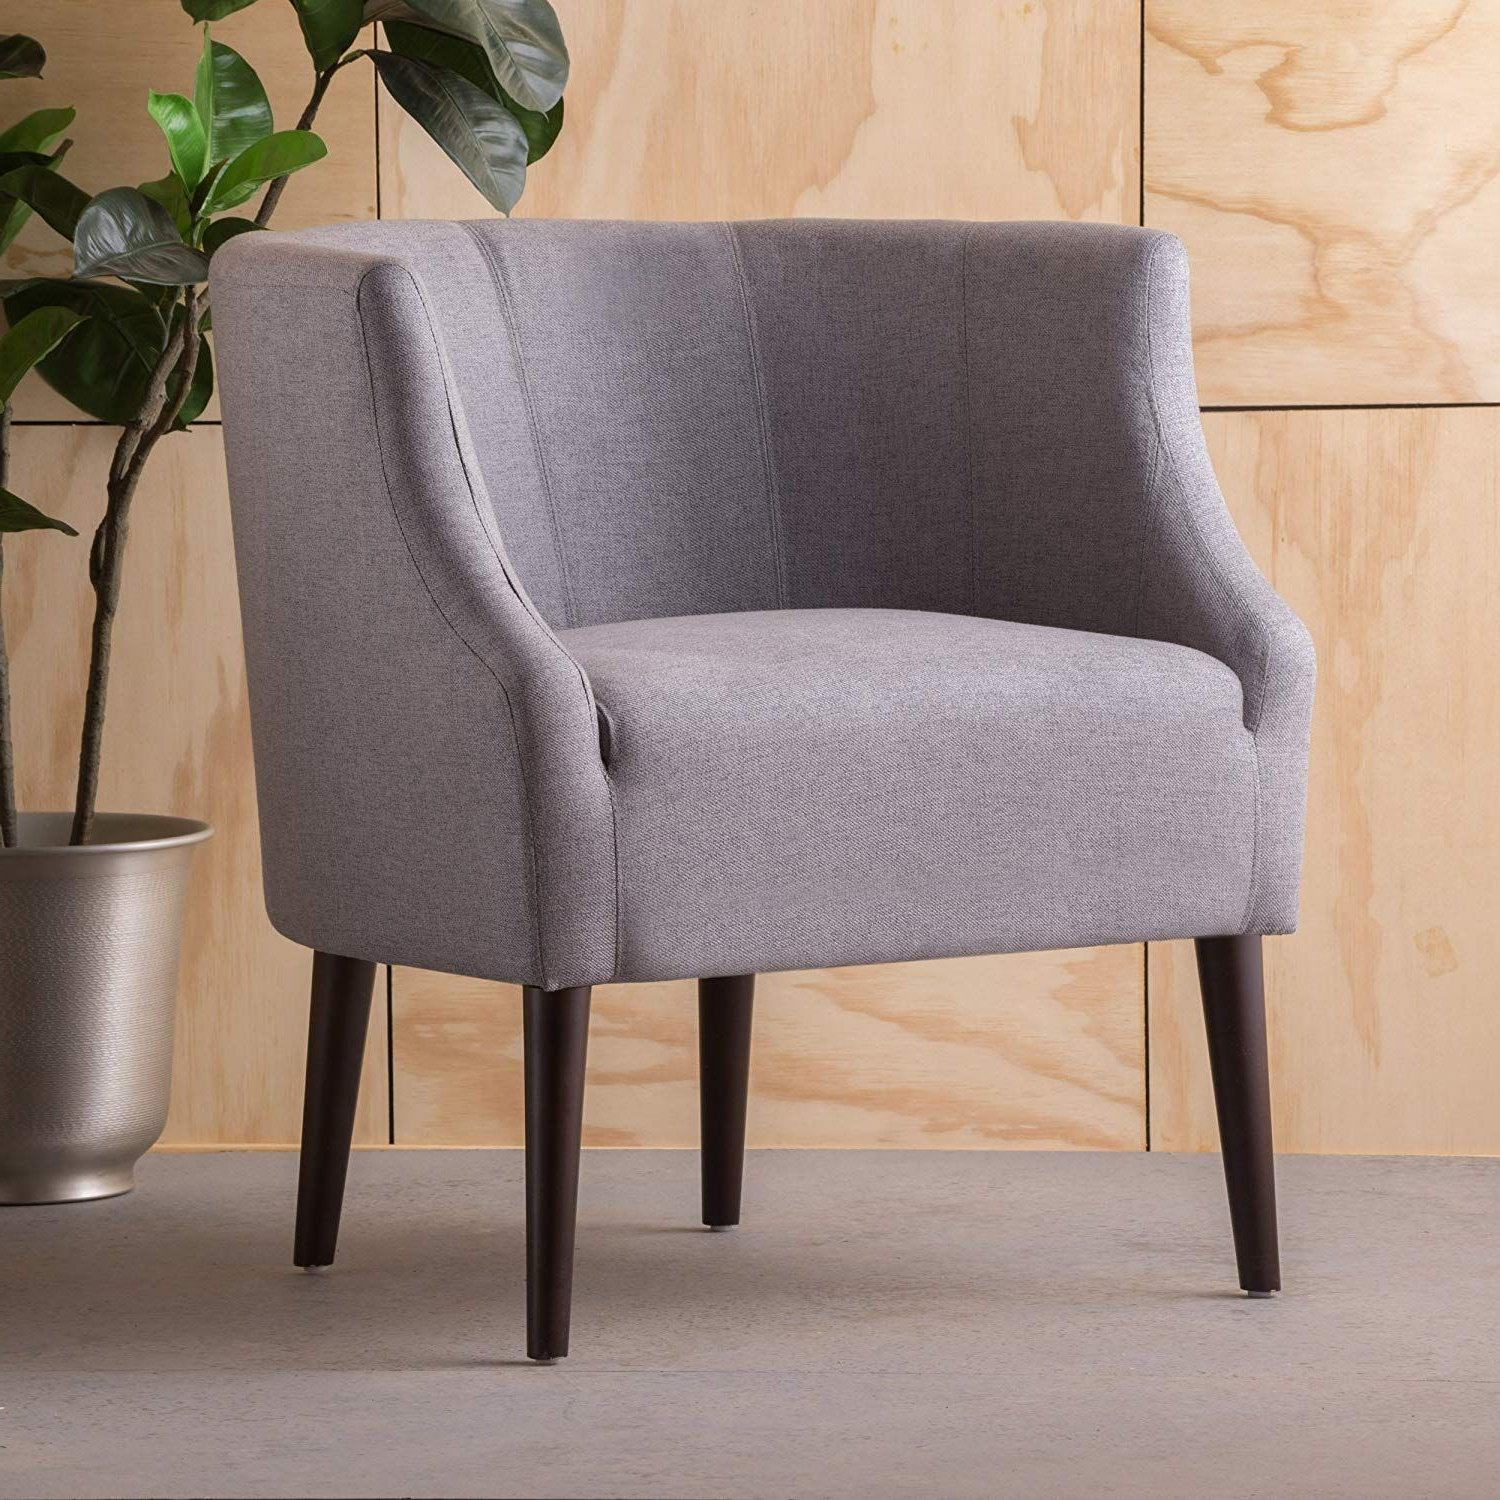 Preferred Christopher Knight Home 300285 Sonnet Arm Chair, Grey In Pertaining To Hanner Polyester Armchairs (View 16 of 20)